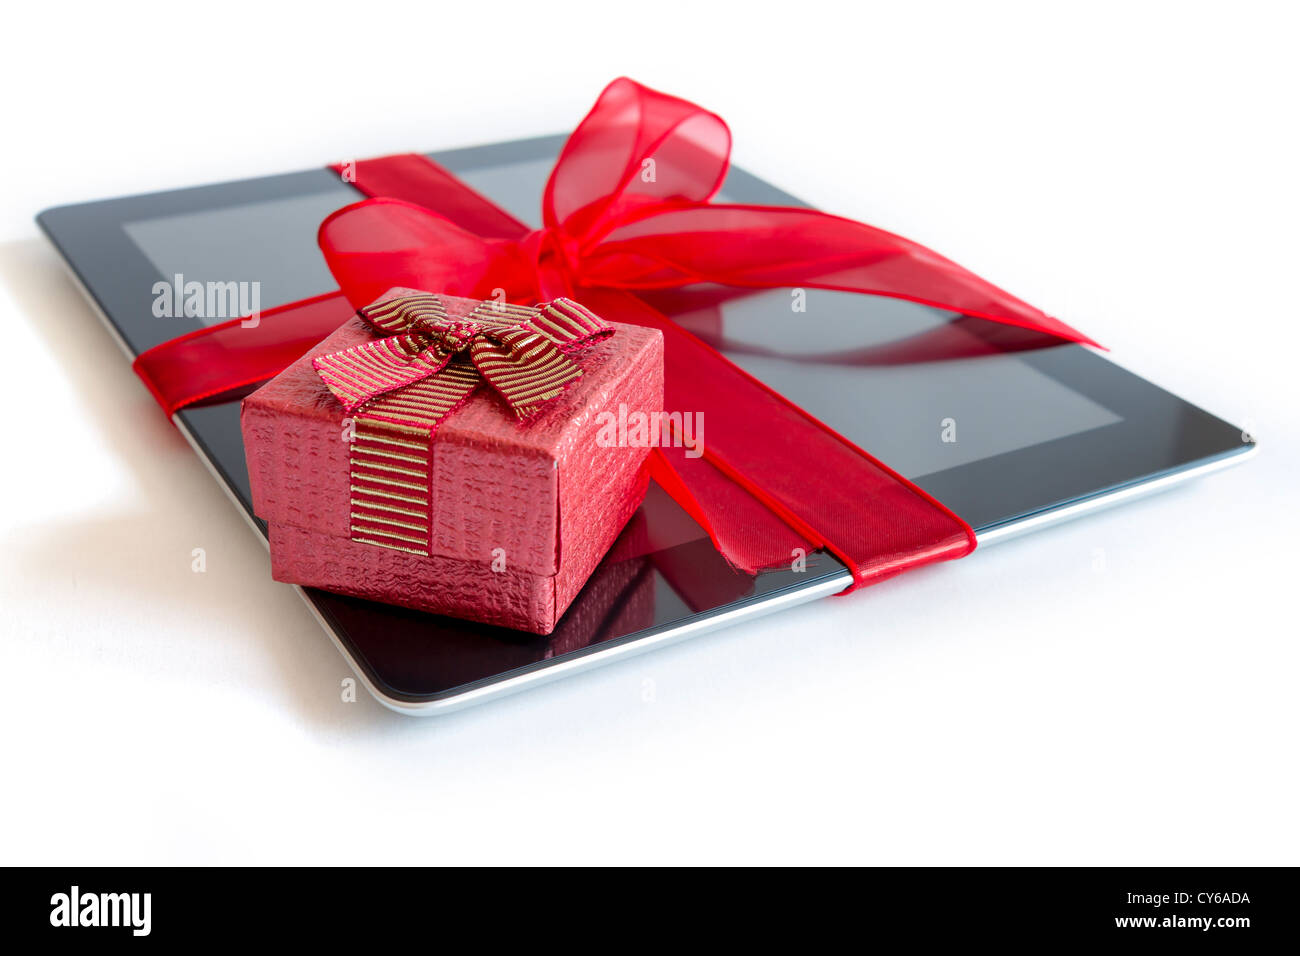 Digital tablet with red ribbon gift isolated on white. - Stock Image